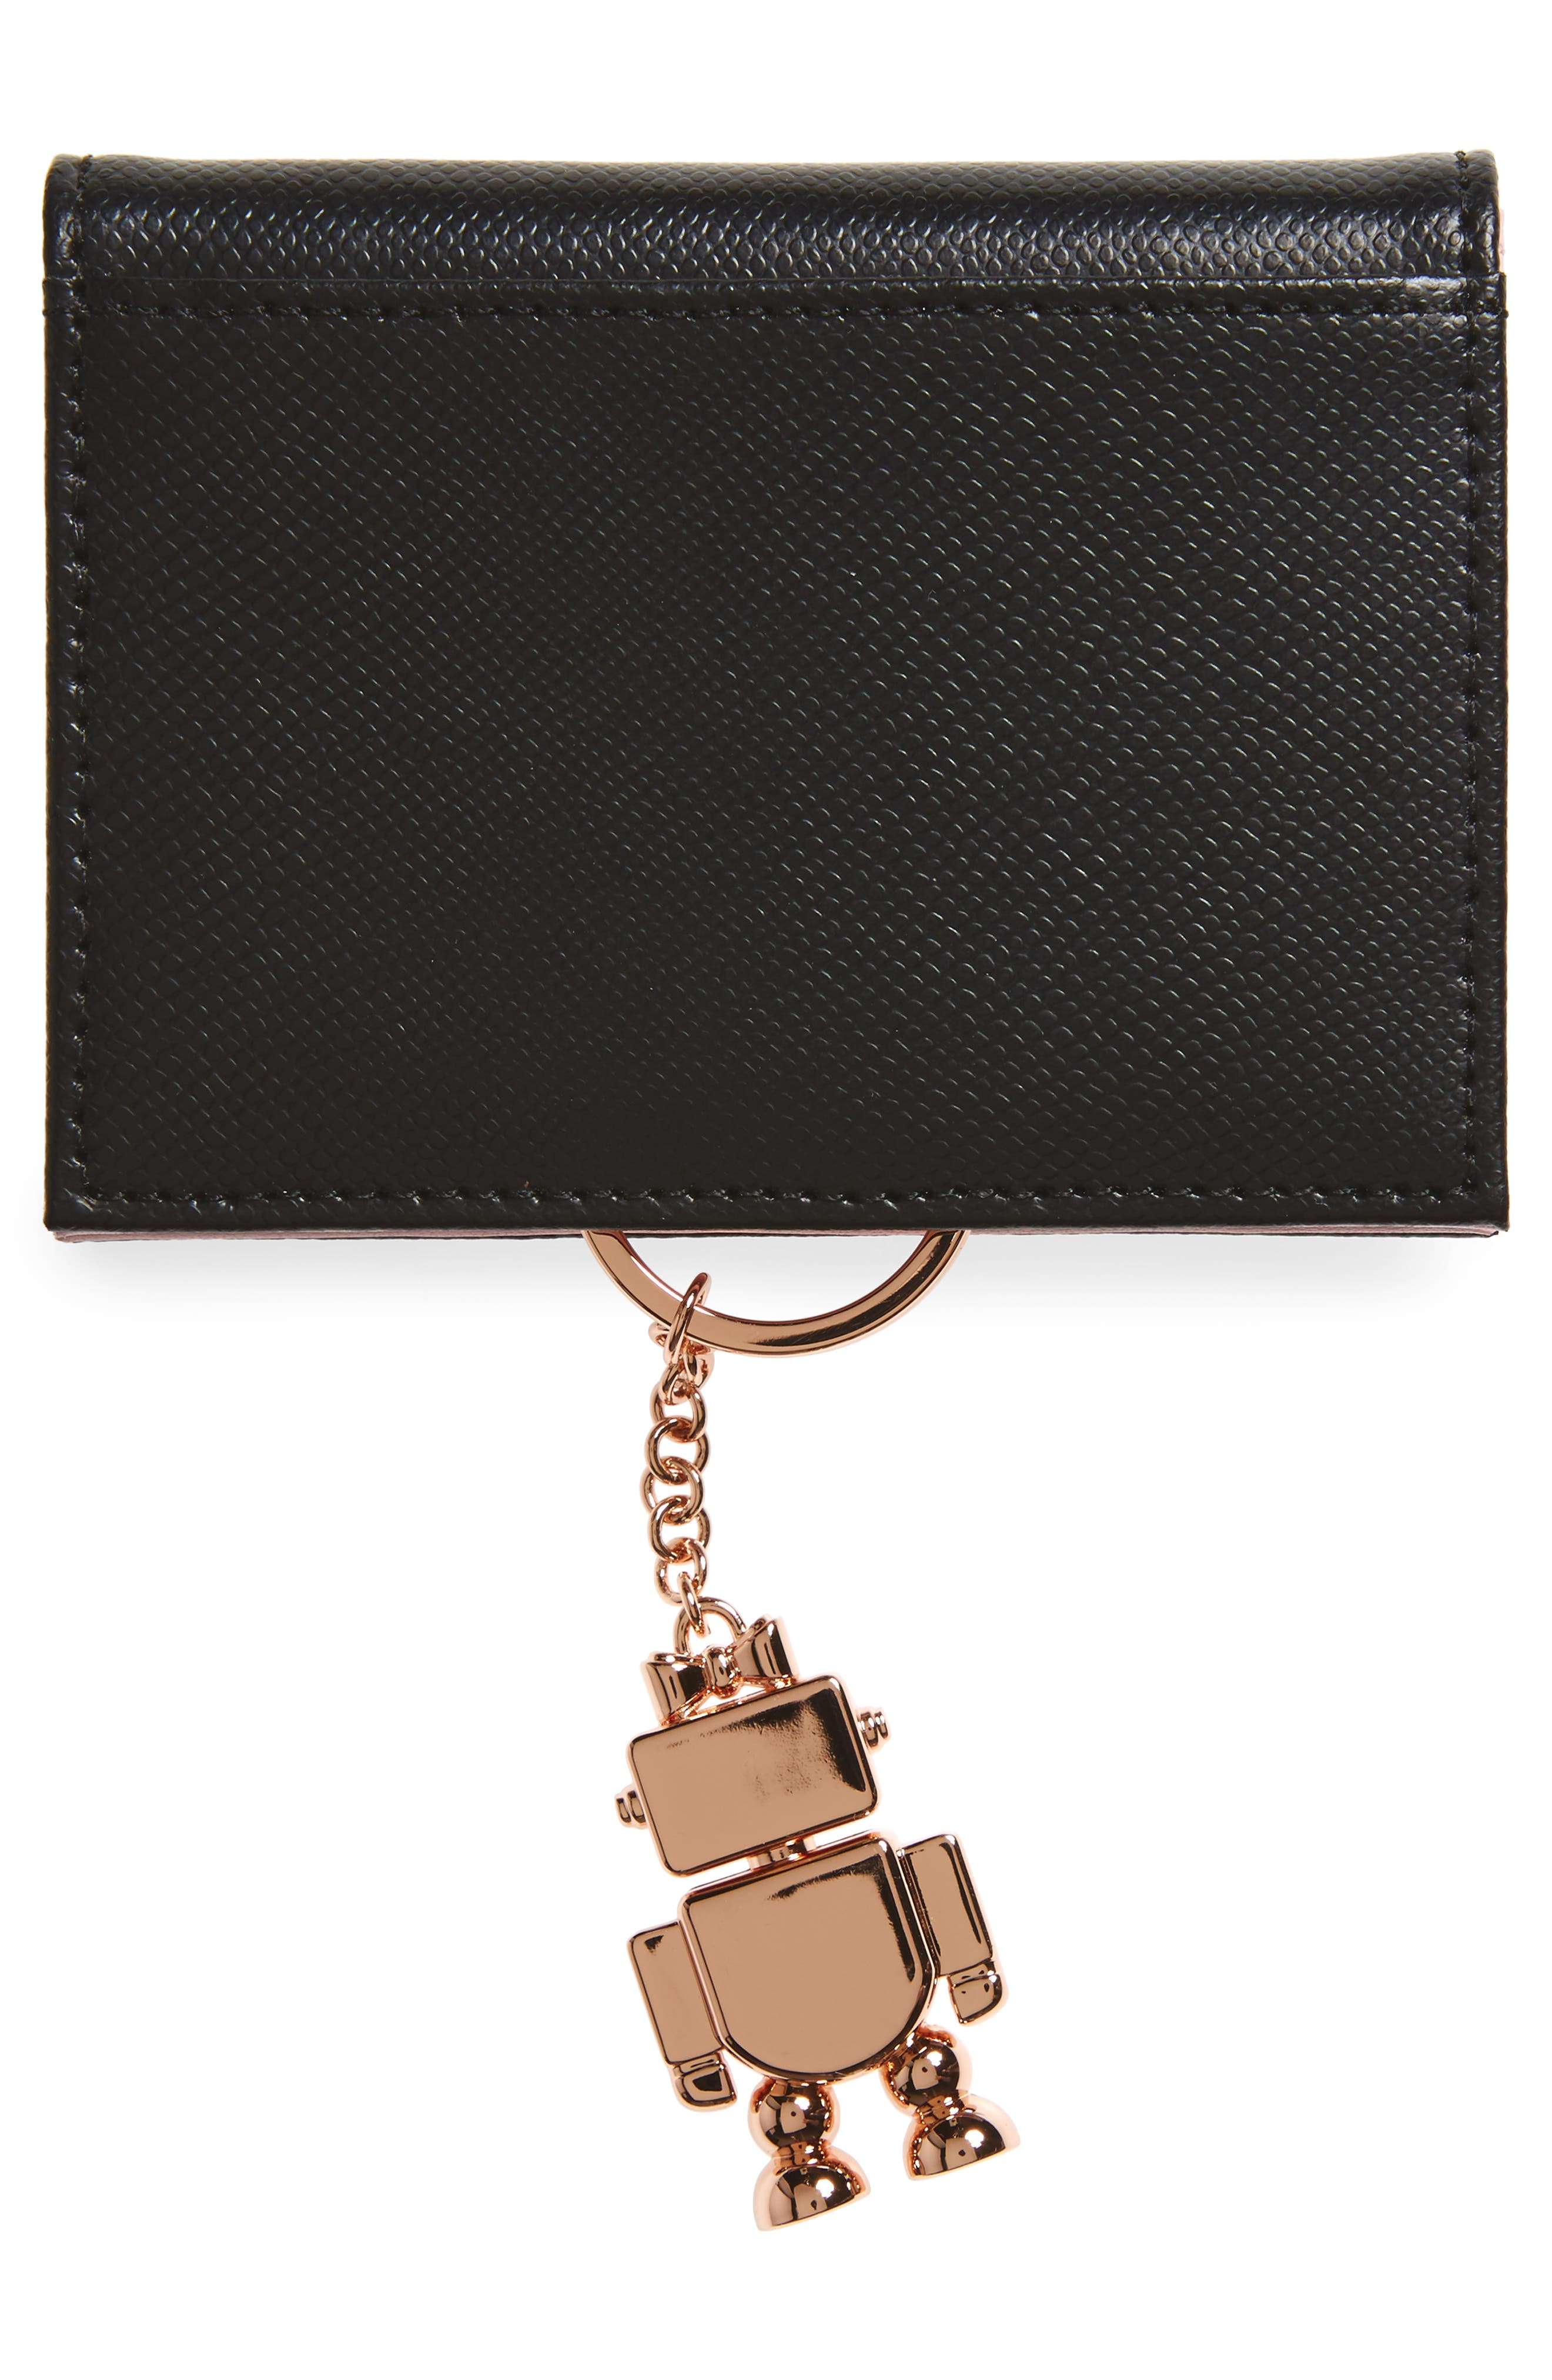 Leather Card Case with Robot Key Chain,                             Alternate thumbnail 7, color,